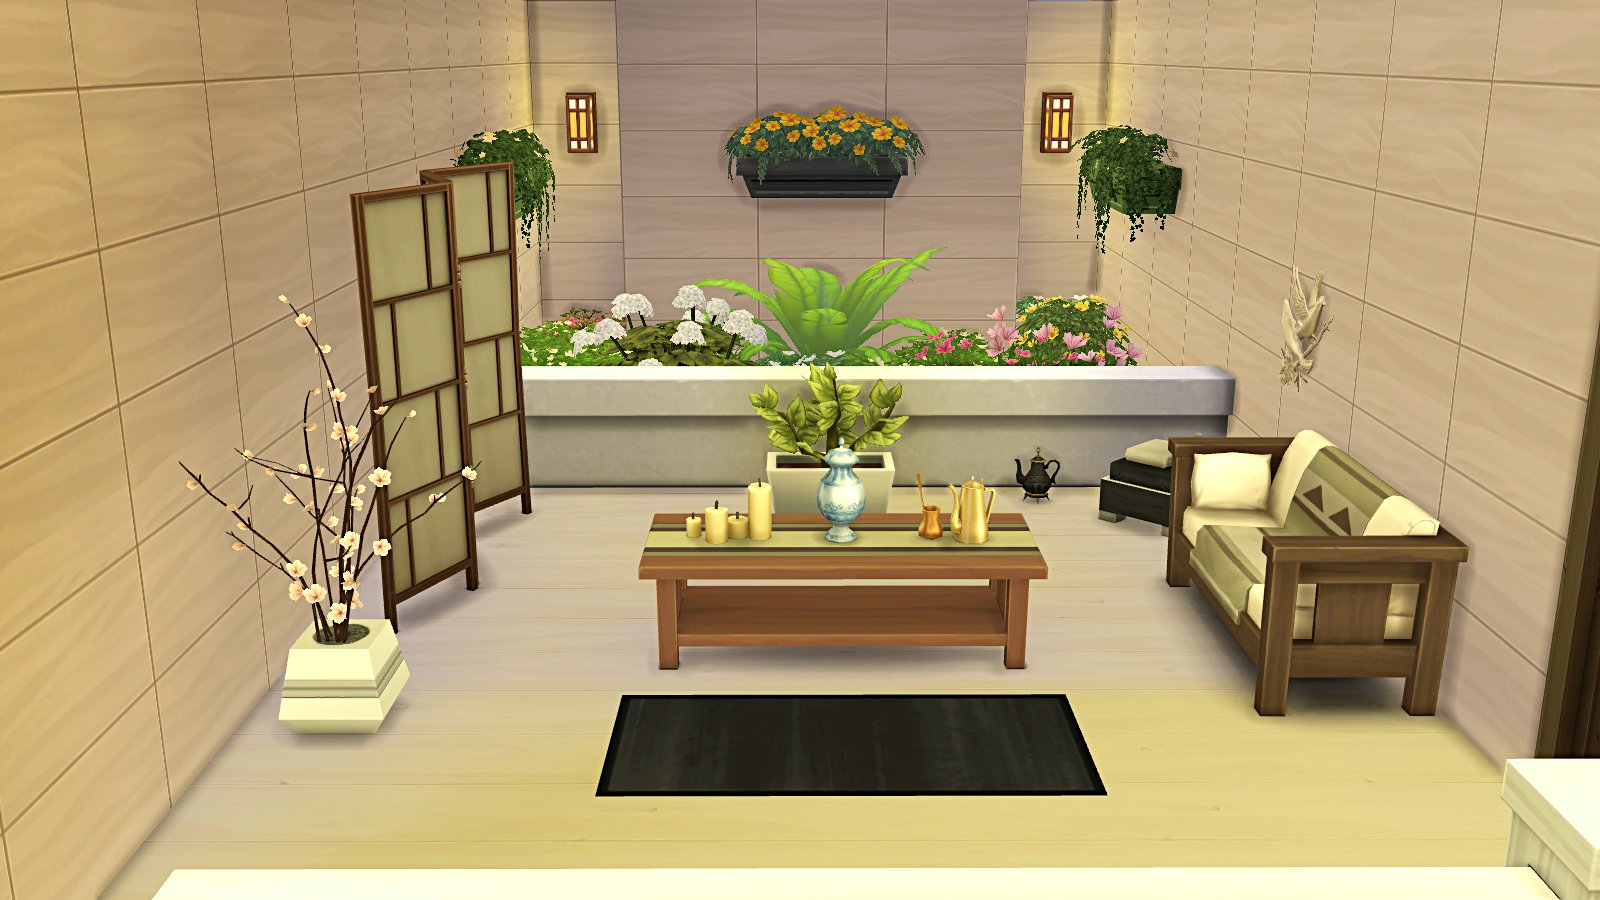 studio leeloo86 la familiale p2 les sims. Black Bedroom Furniture Sets. Home Design Ideas